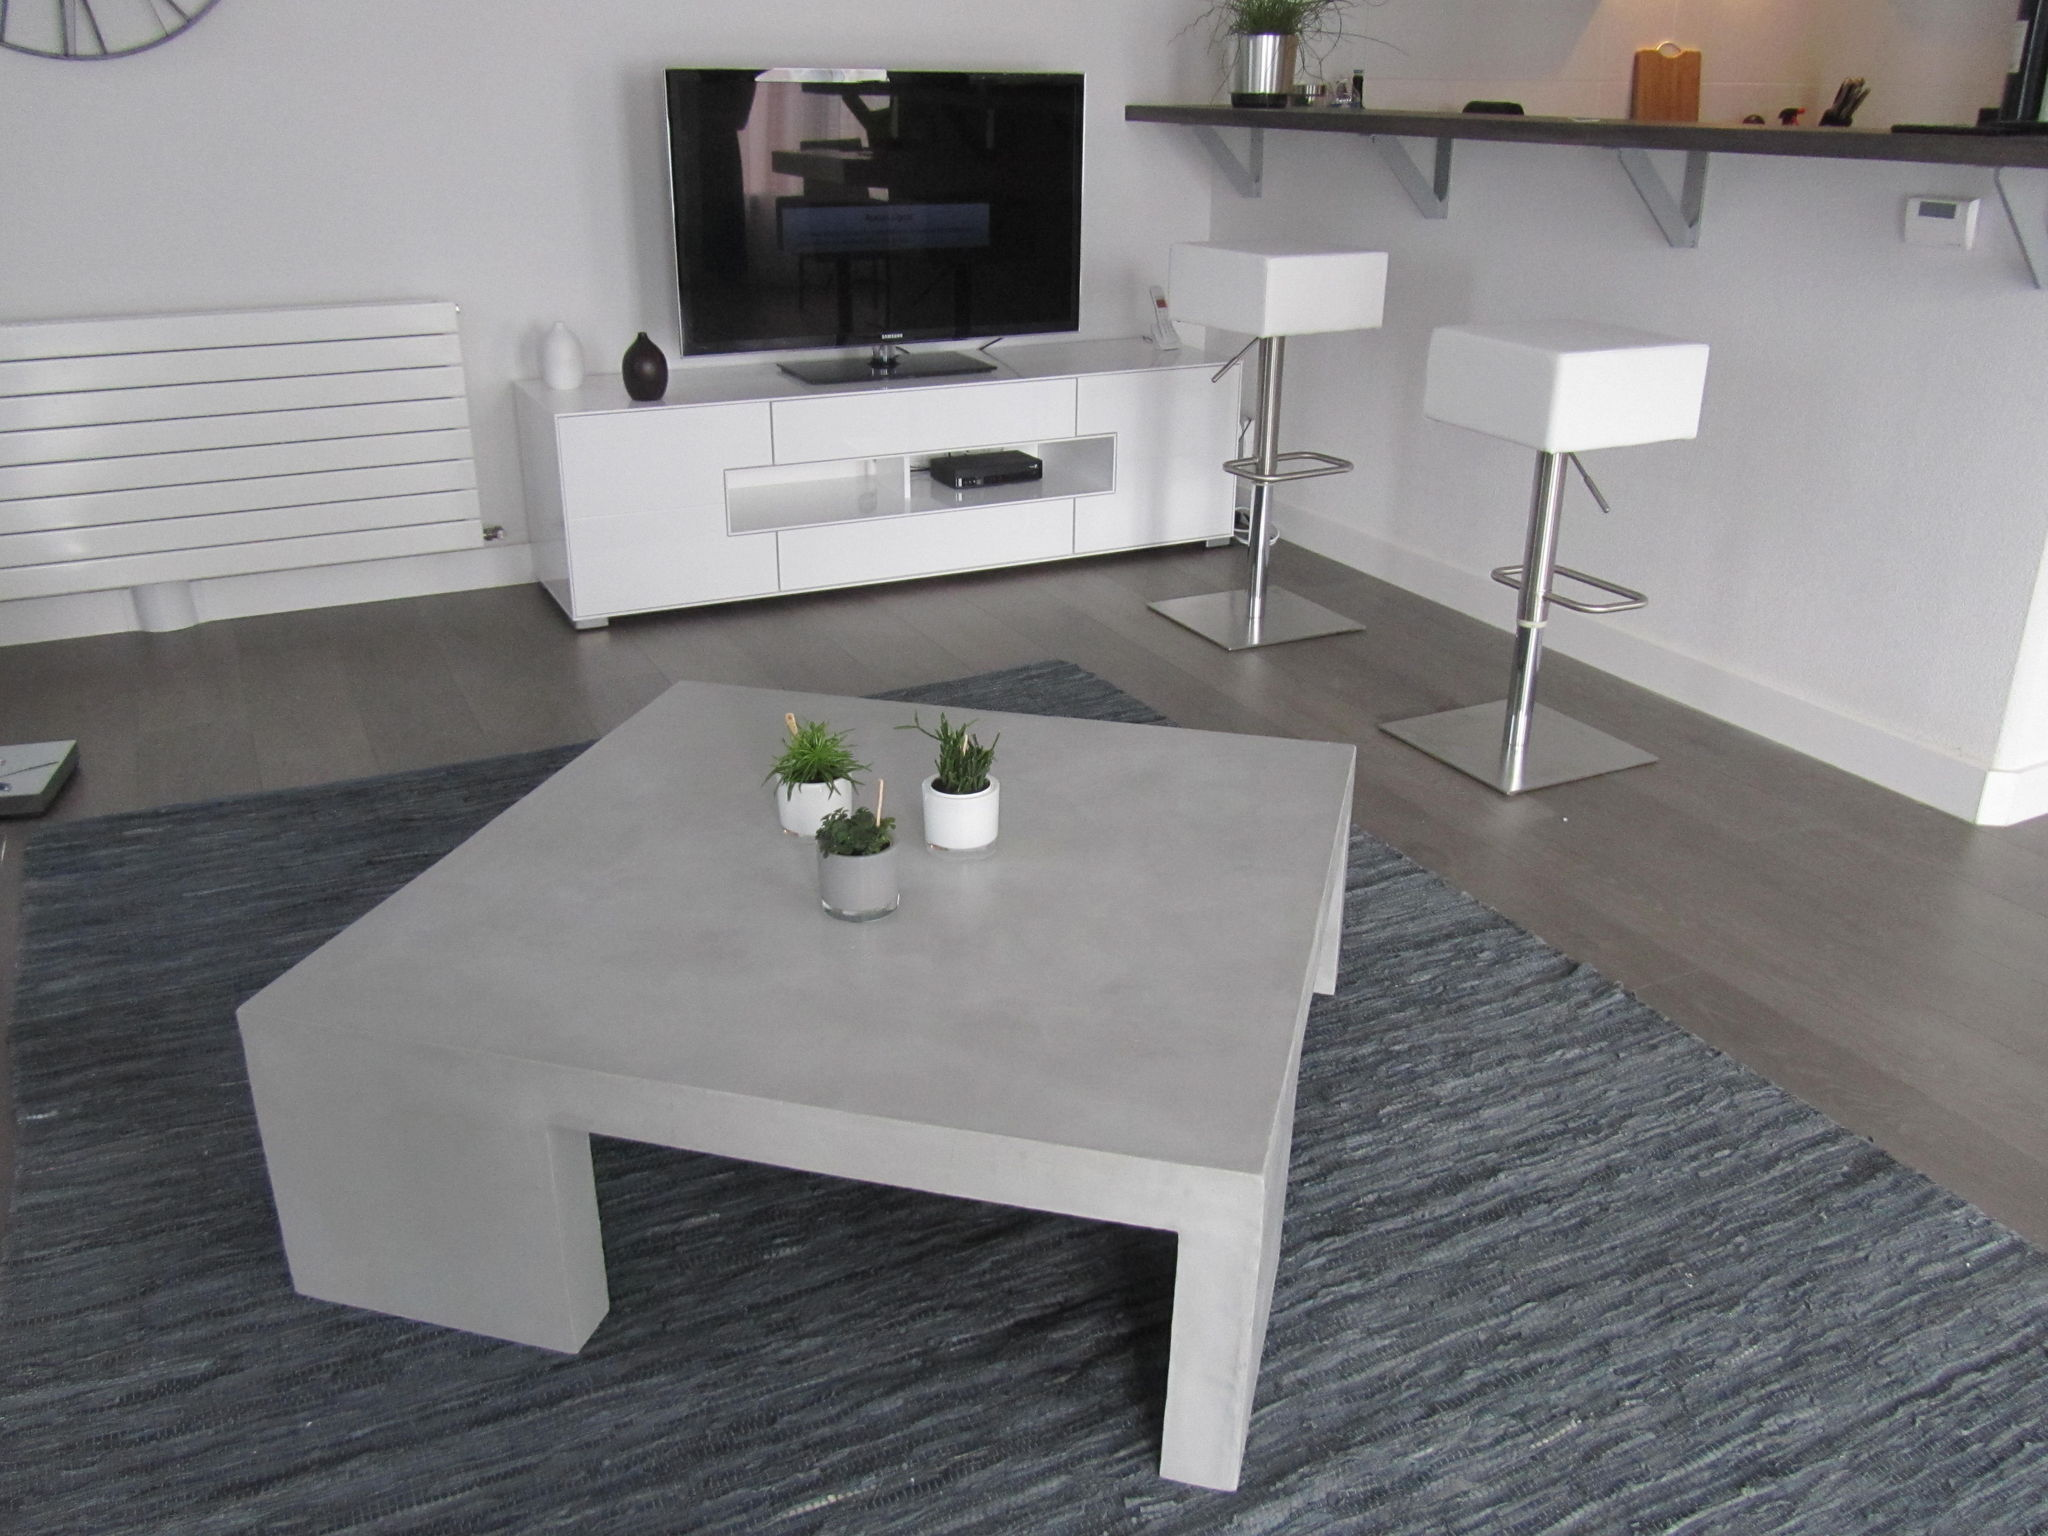 Table de salon grise en beton cire photo de beton cire for Table effet beton cire